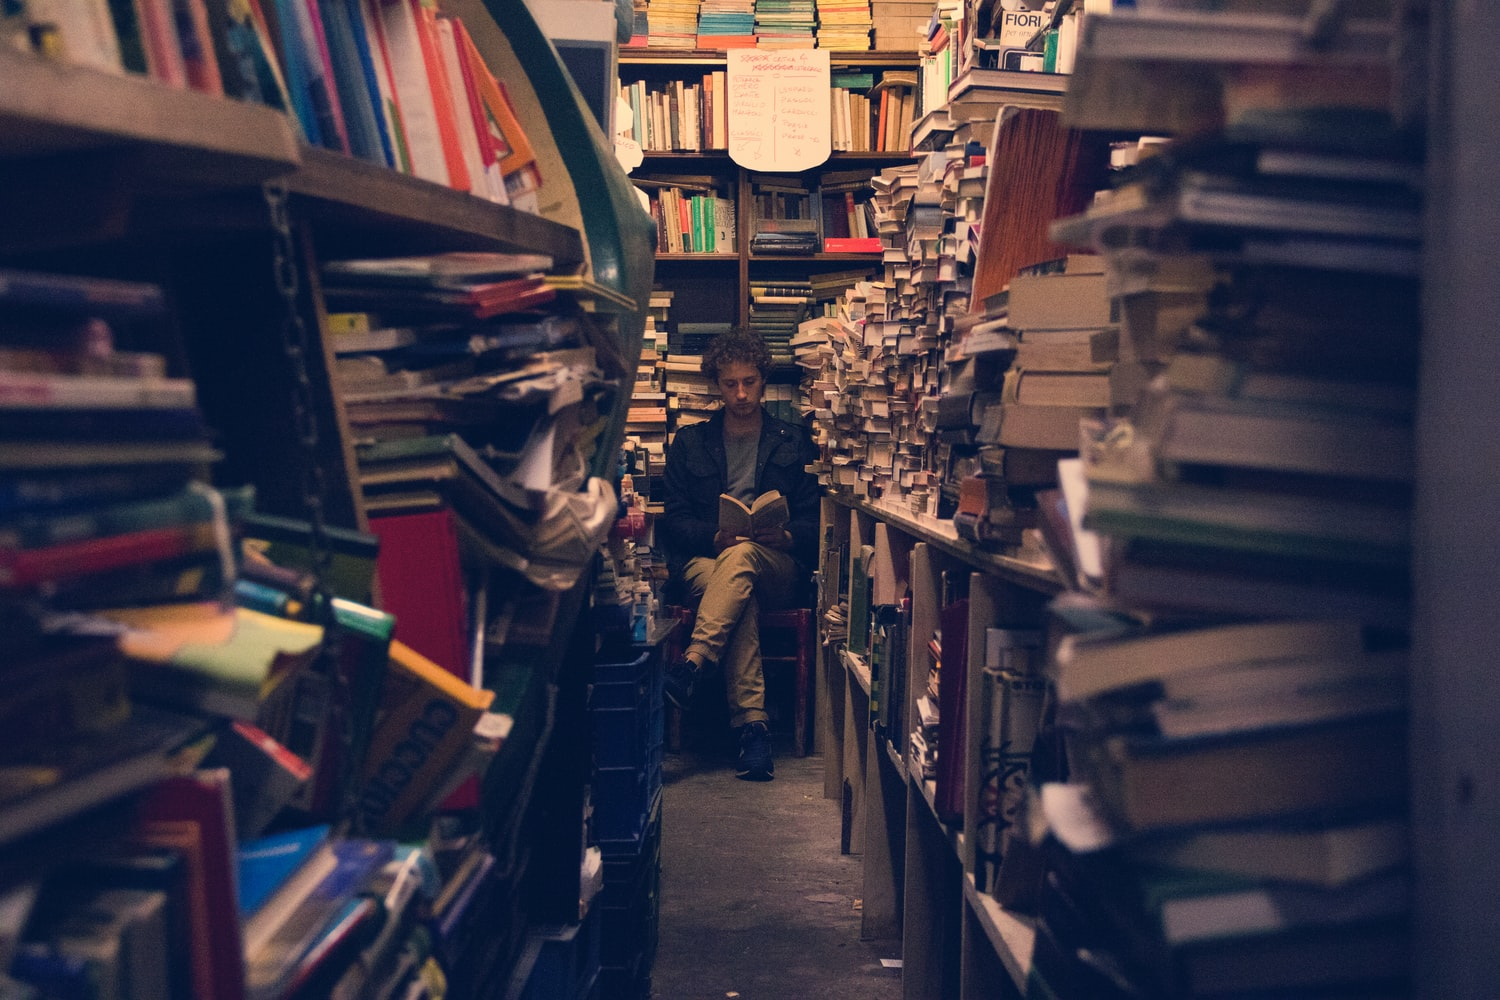 man sitting and reading a book inside the libarary